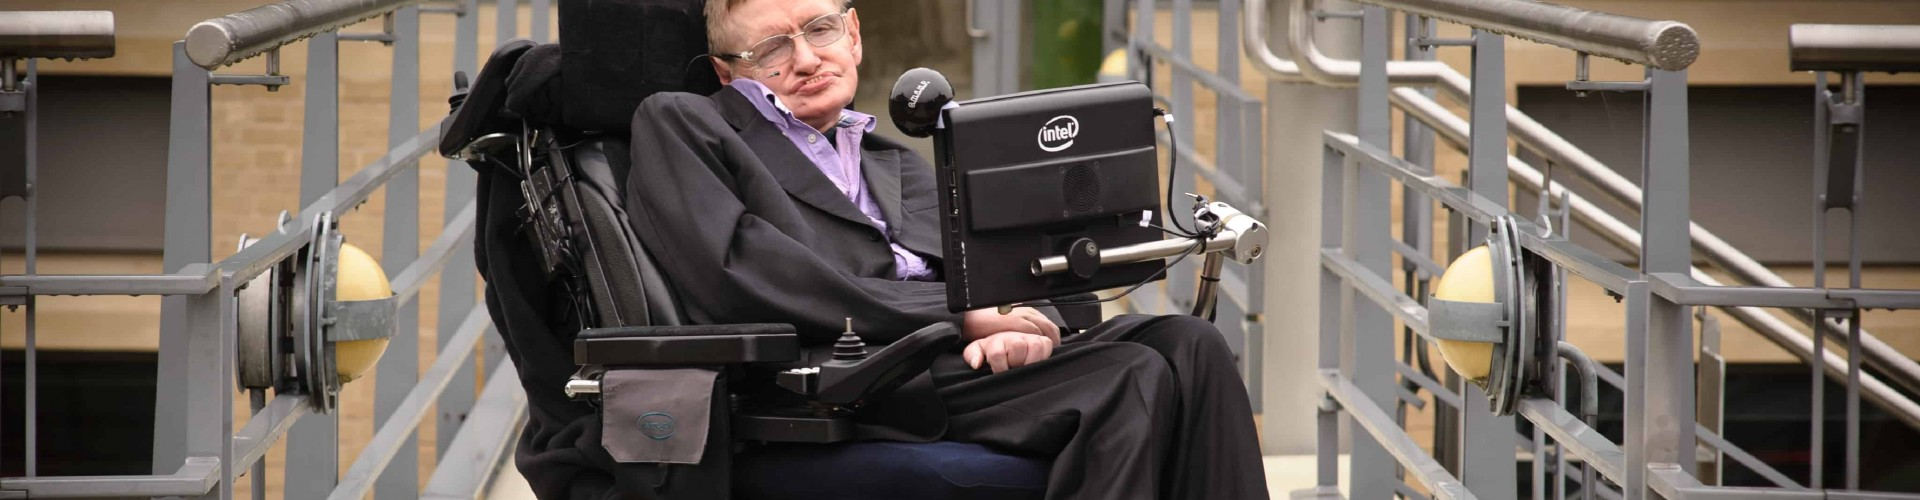 What should we know about Stephen Hawking